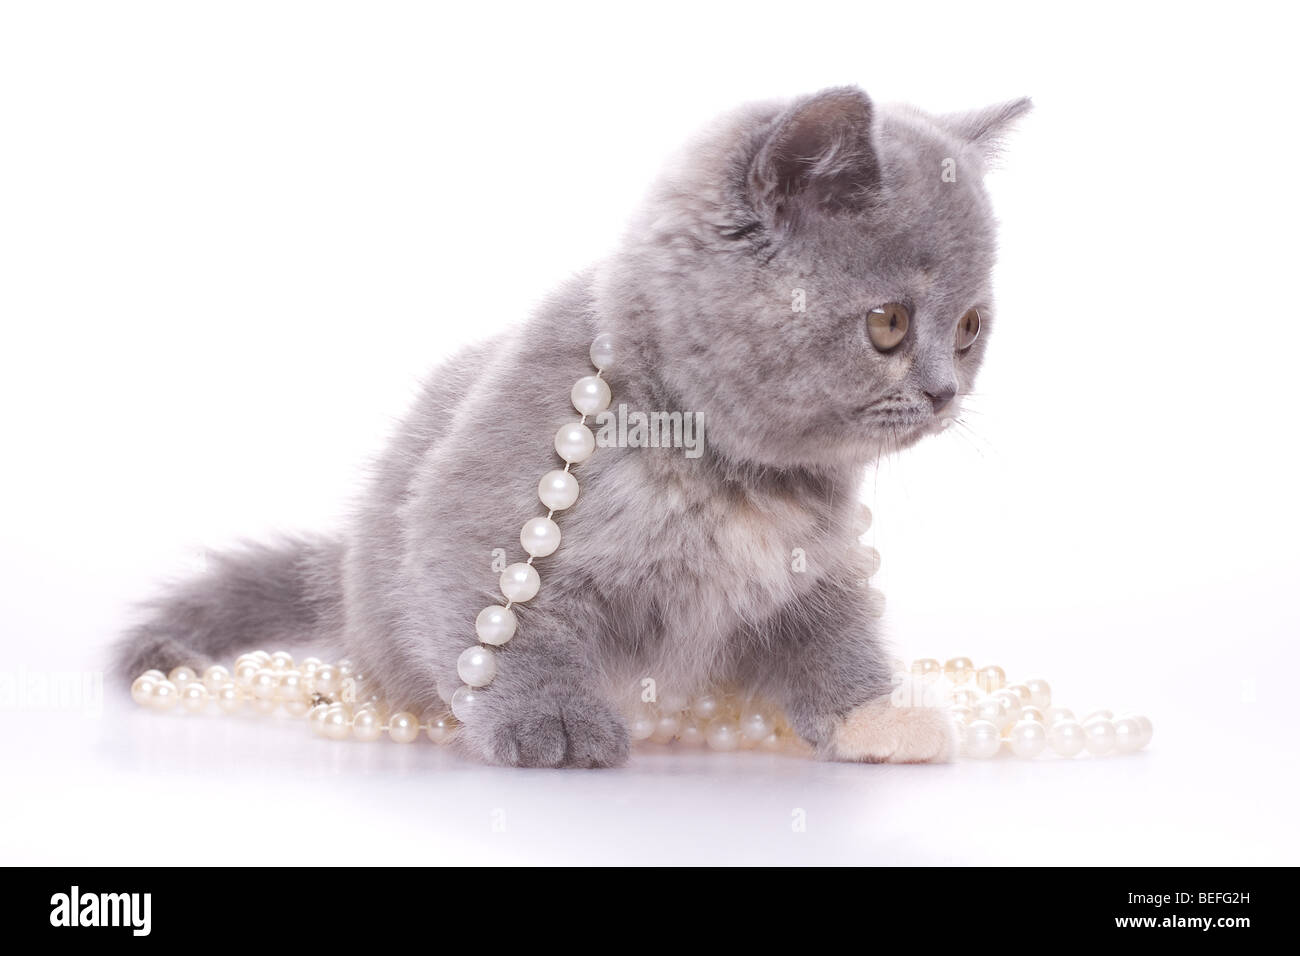 little kitty with pearls on a white background - Stock Image